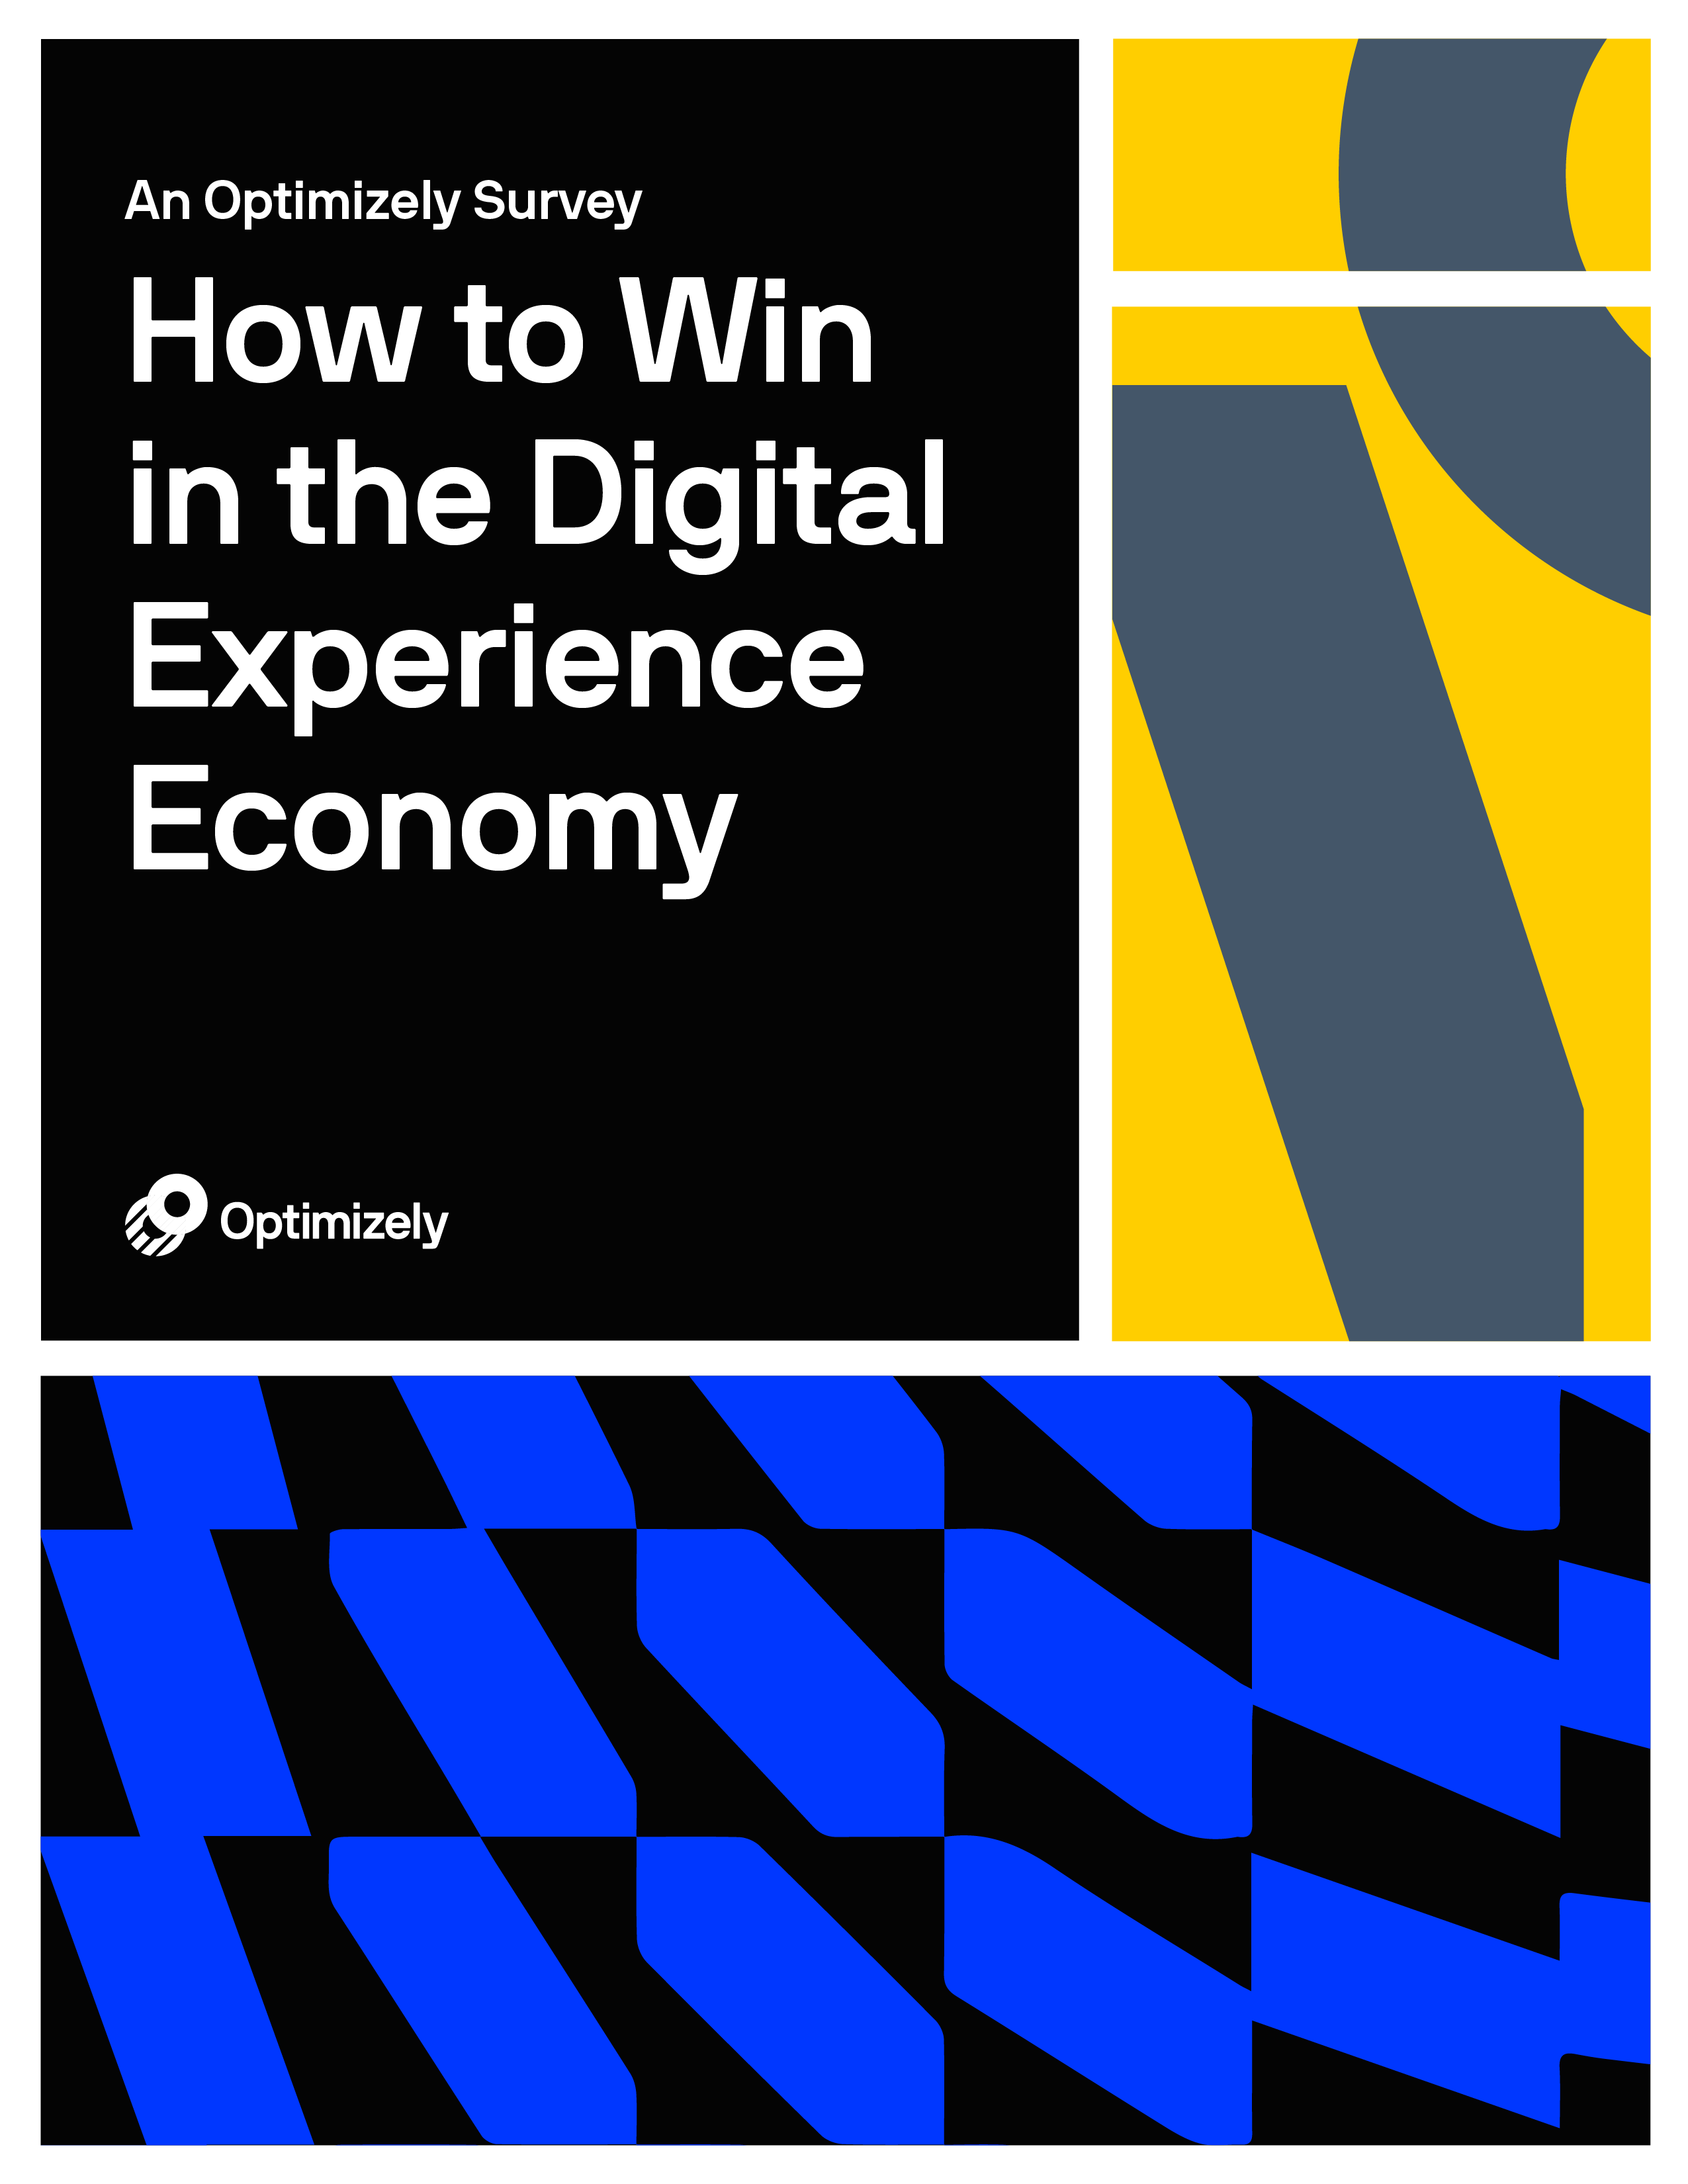 How to Win in the Digital Experience Economy